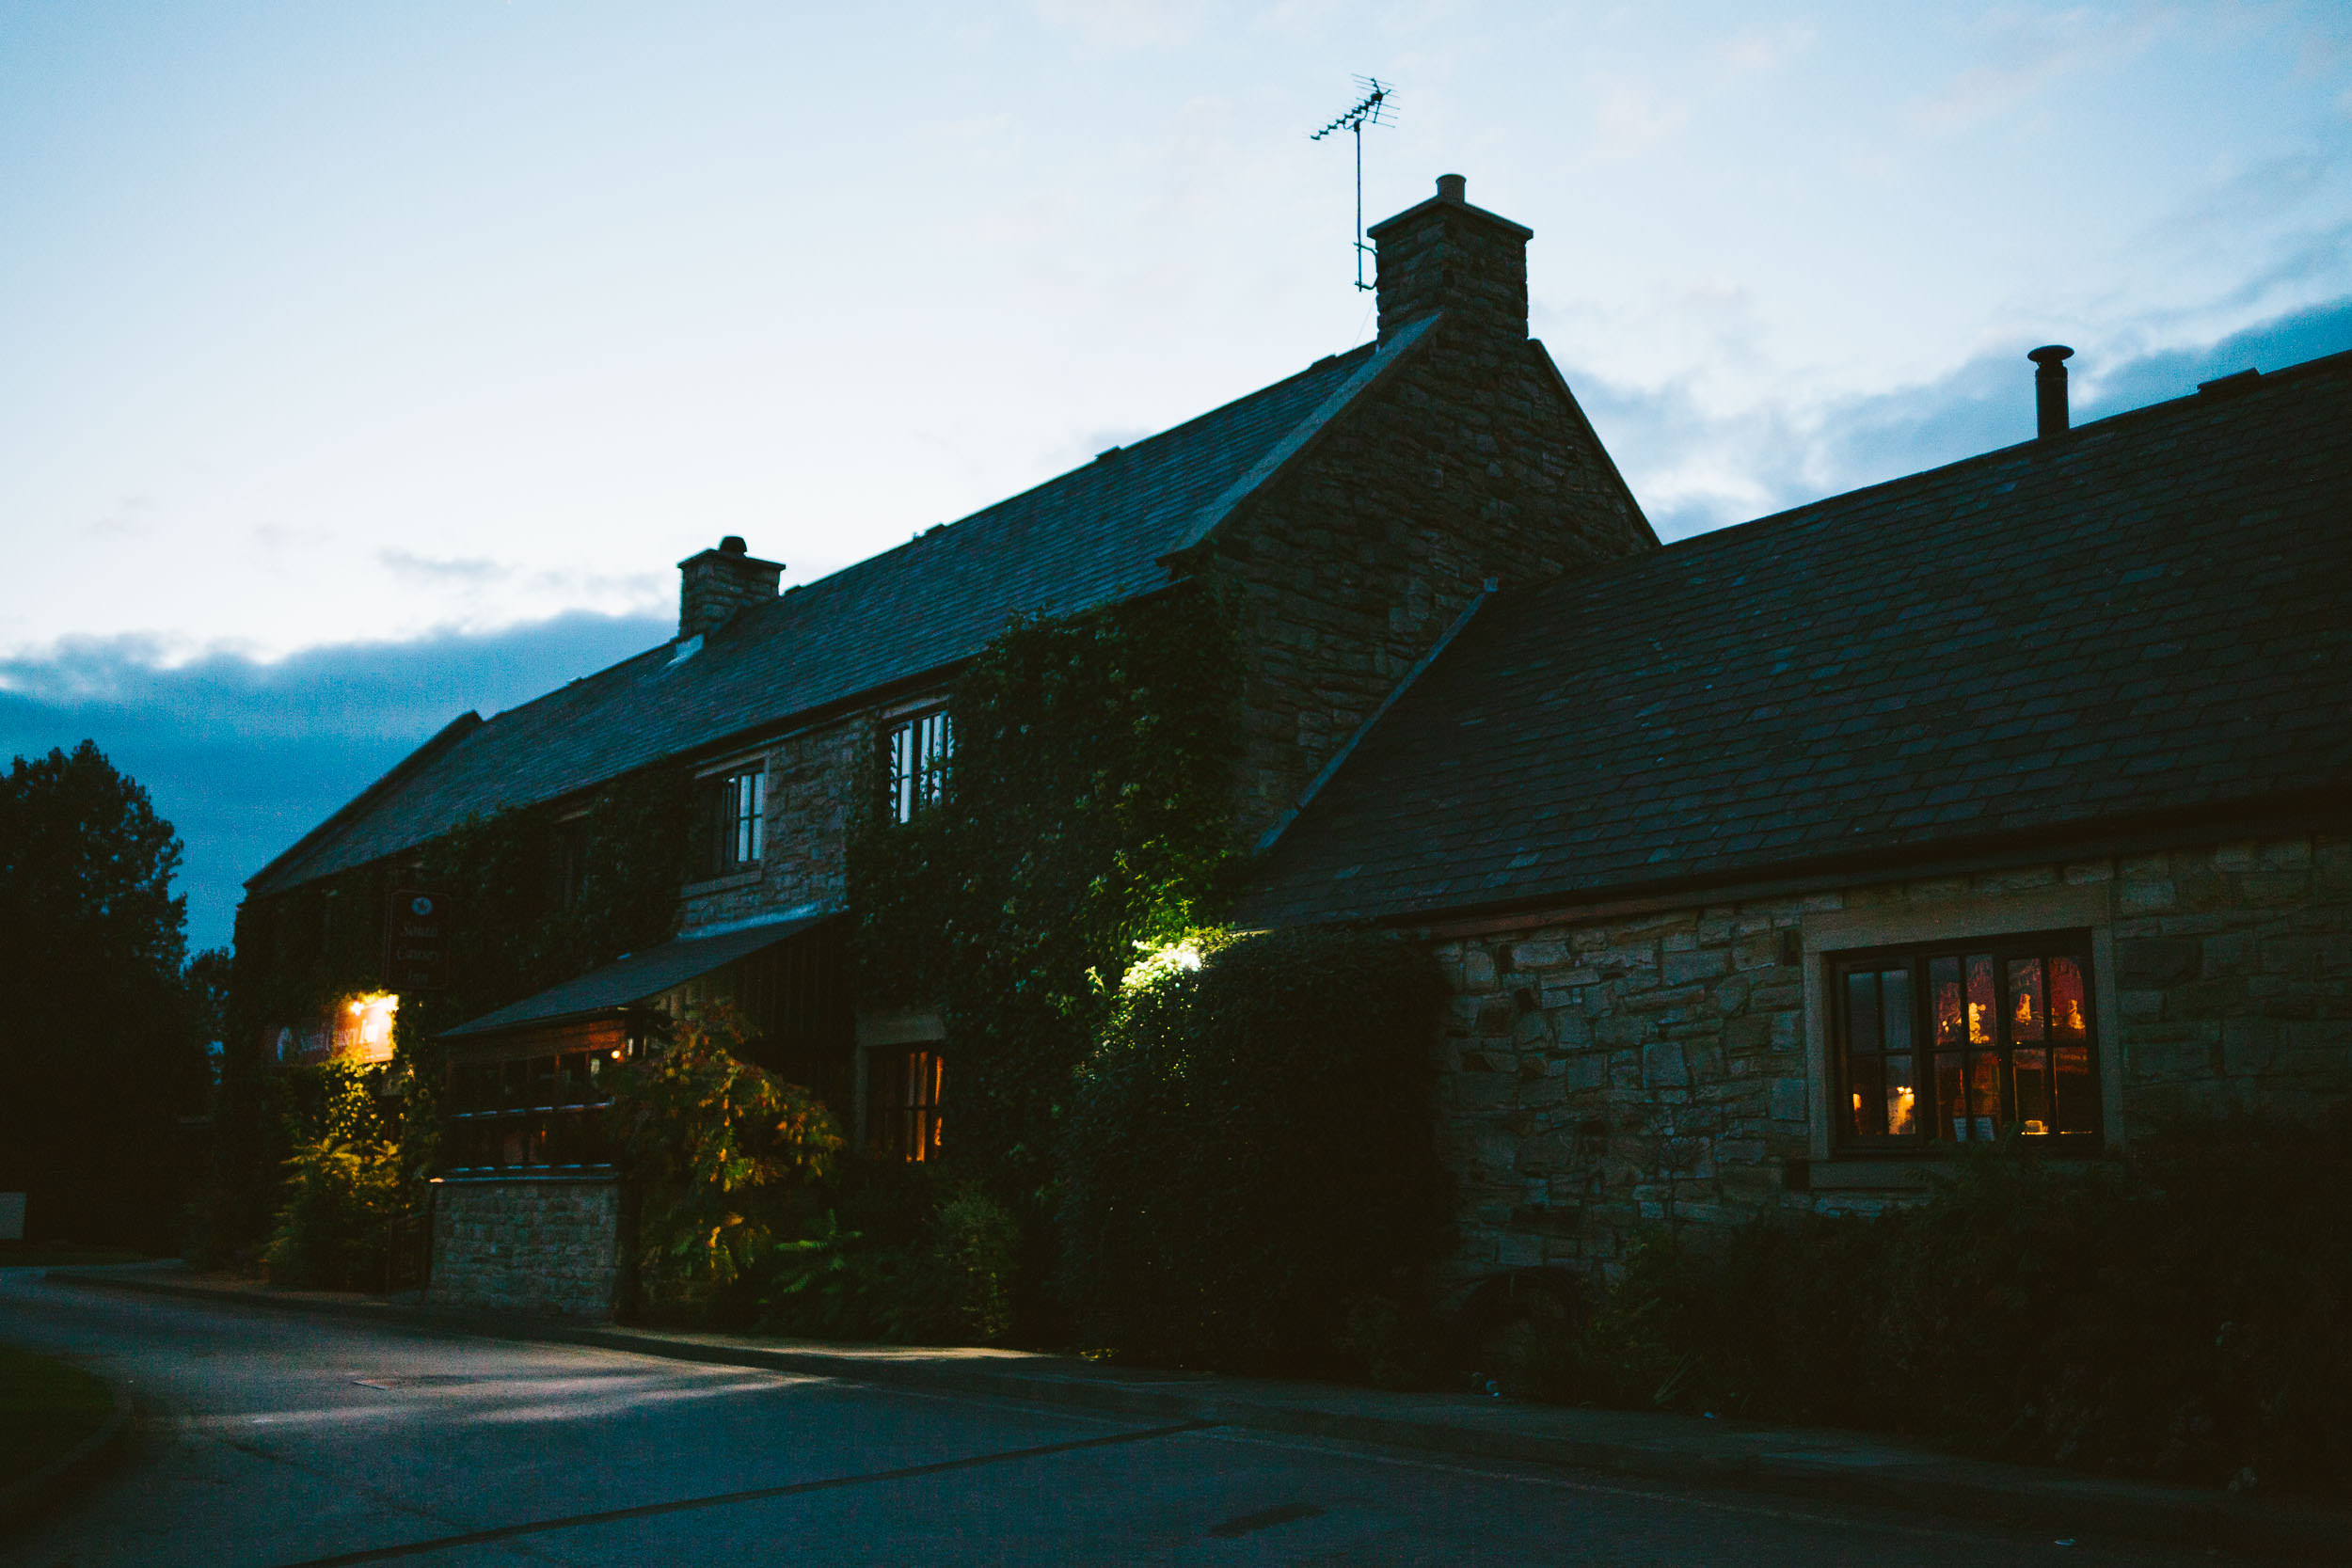 Exterior of South Causey Inn at night